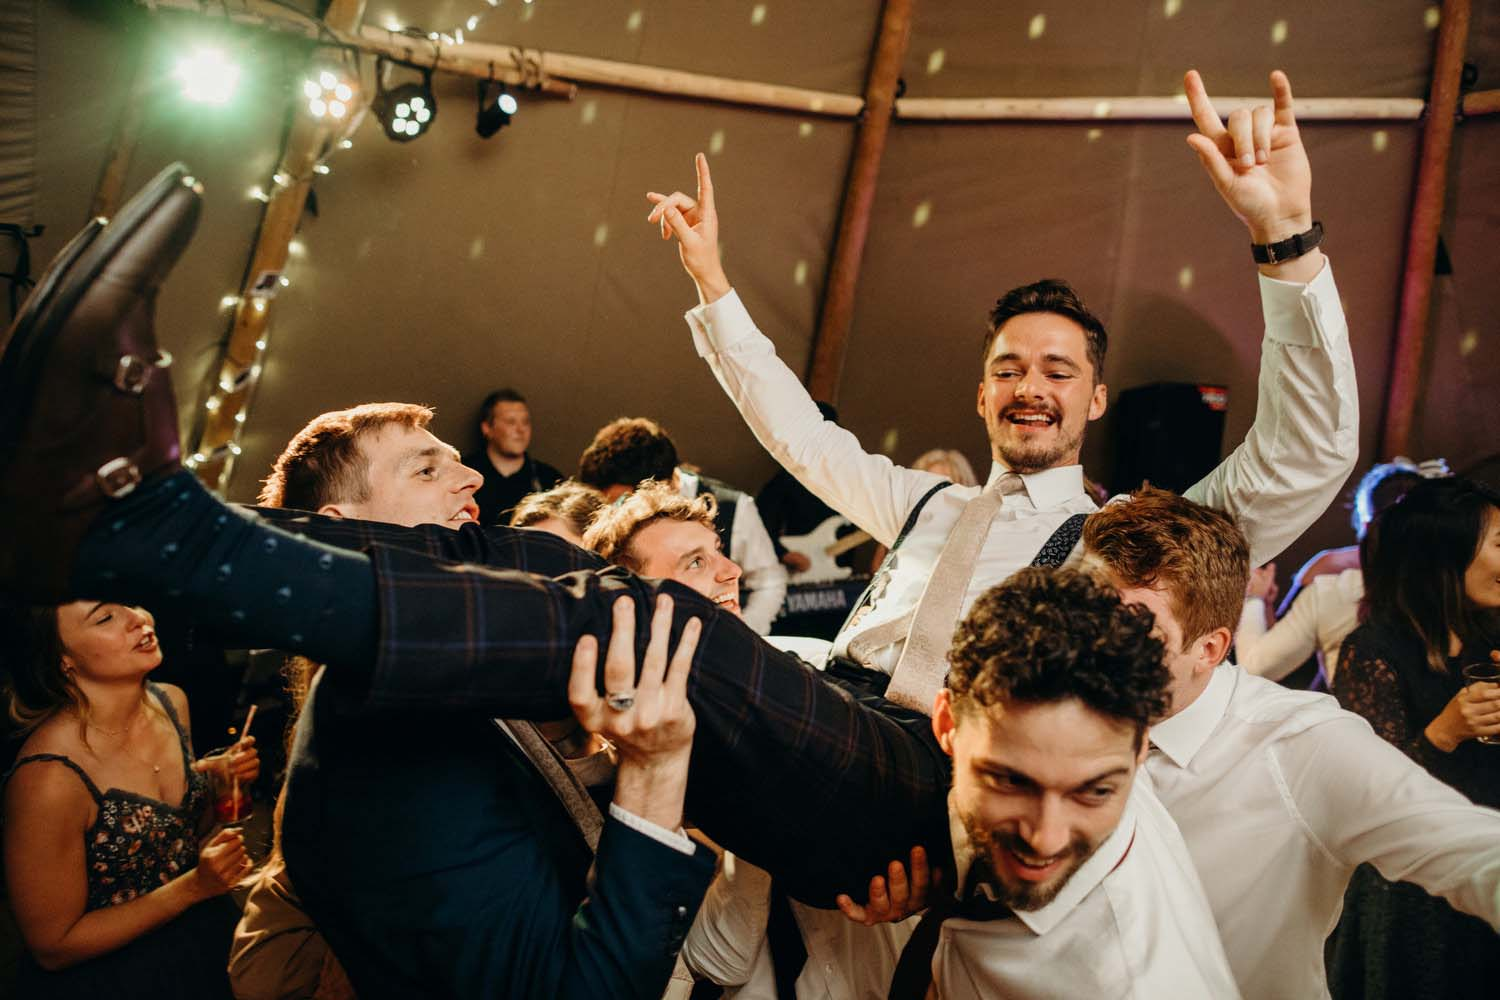 groom being picked up in air at wedding